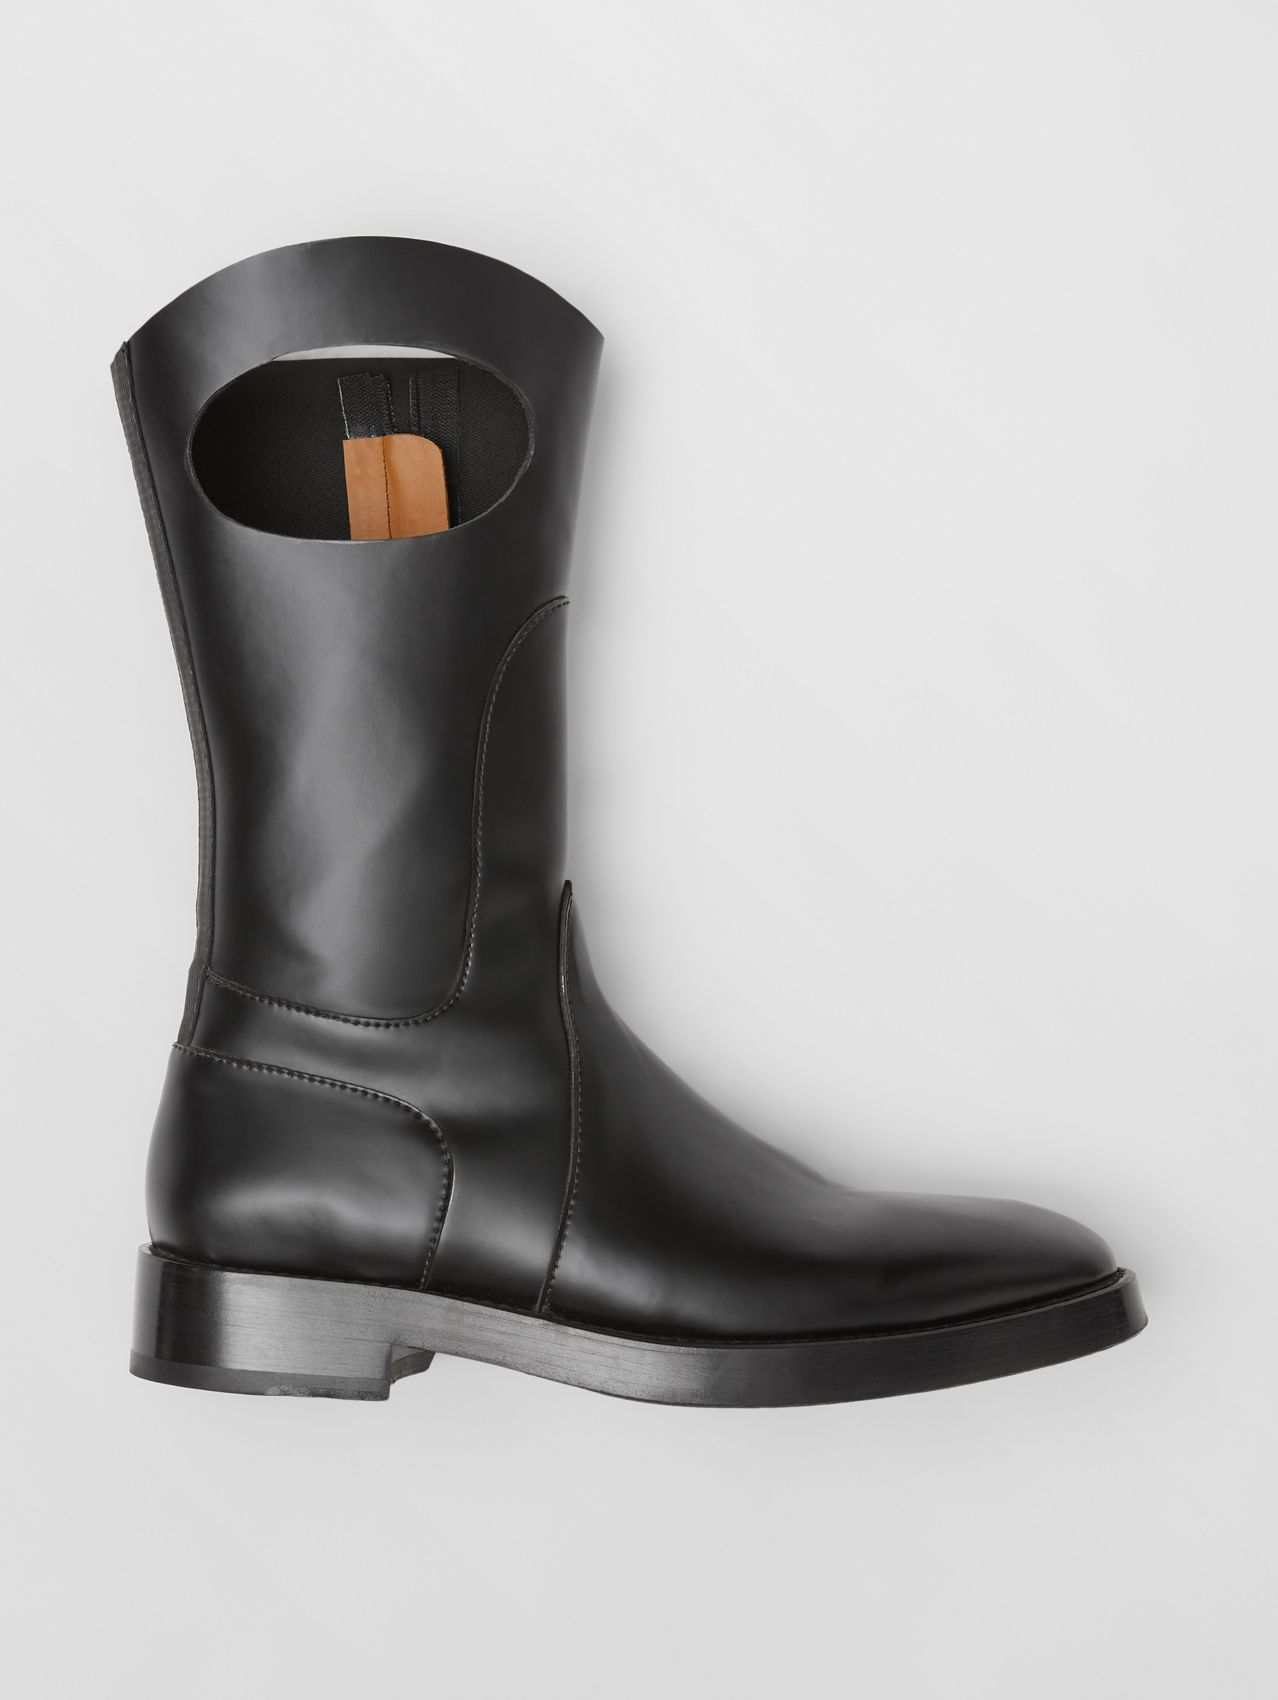 Porthole Detail Panelled Leather Boots in Black